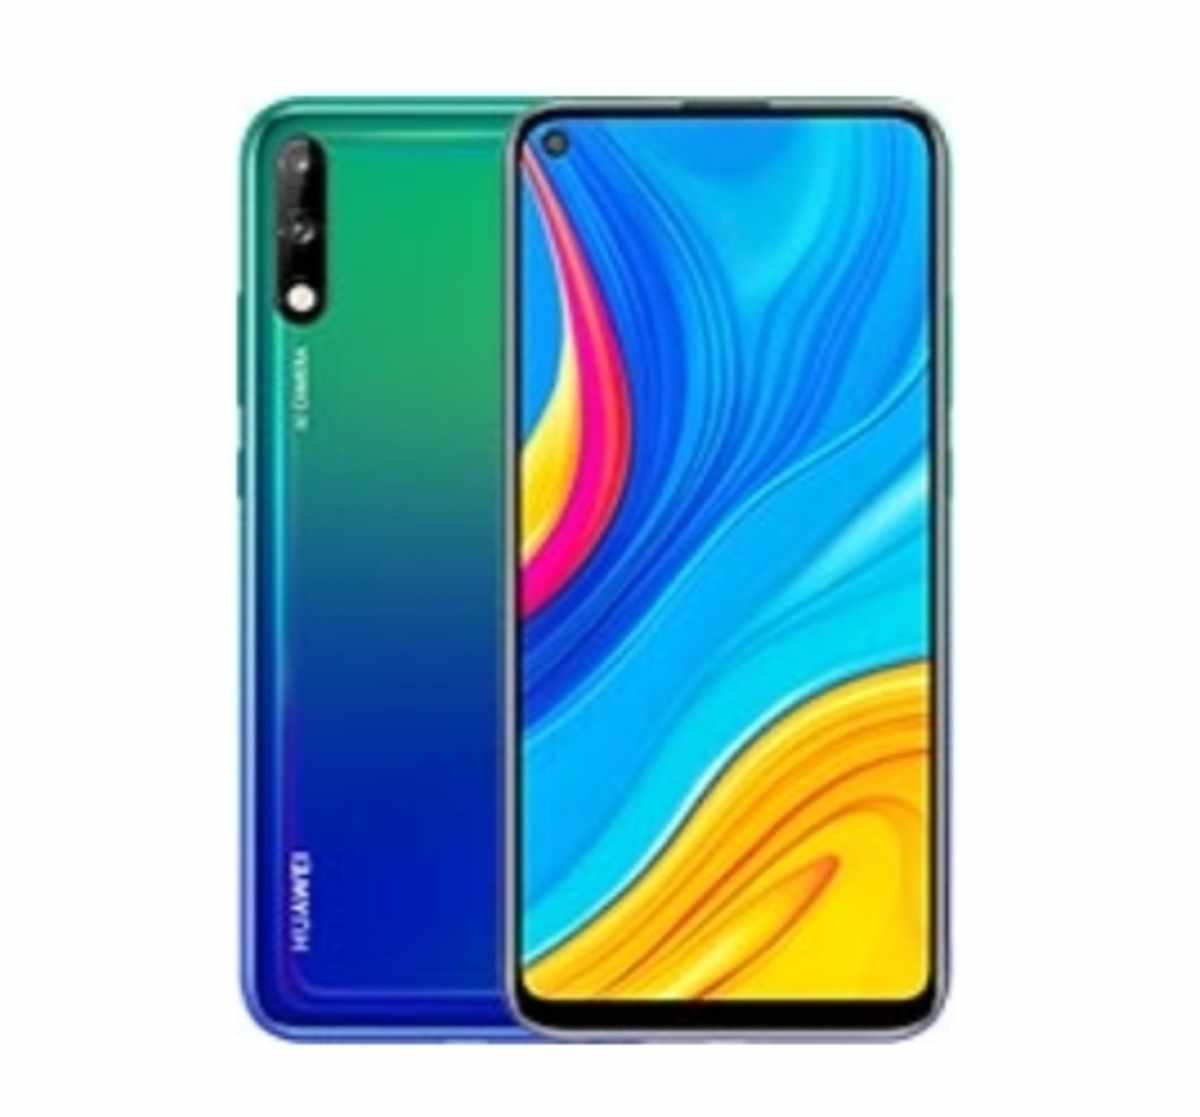 Huawei Enjoy 10, price, specs and features in Nigeria, specs  and price of Huawei enjoy 10 in Nigeria, Huawei enjoy 10 price in Nigeria